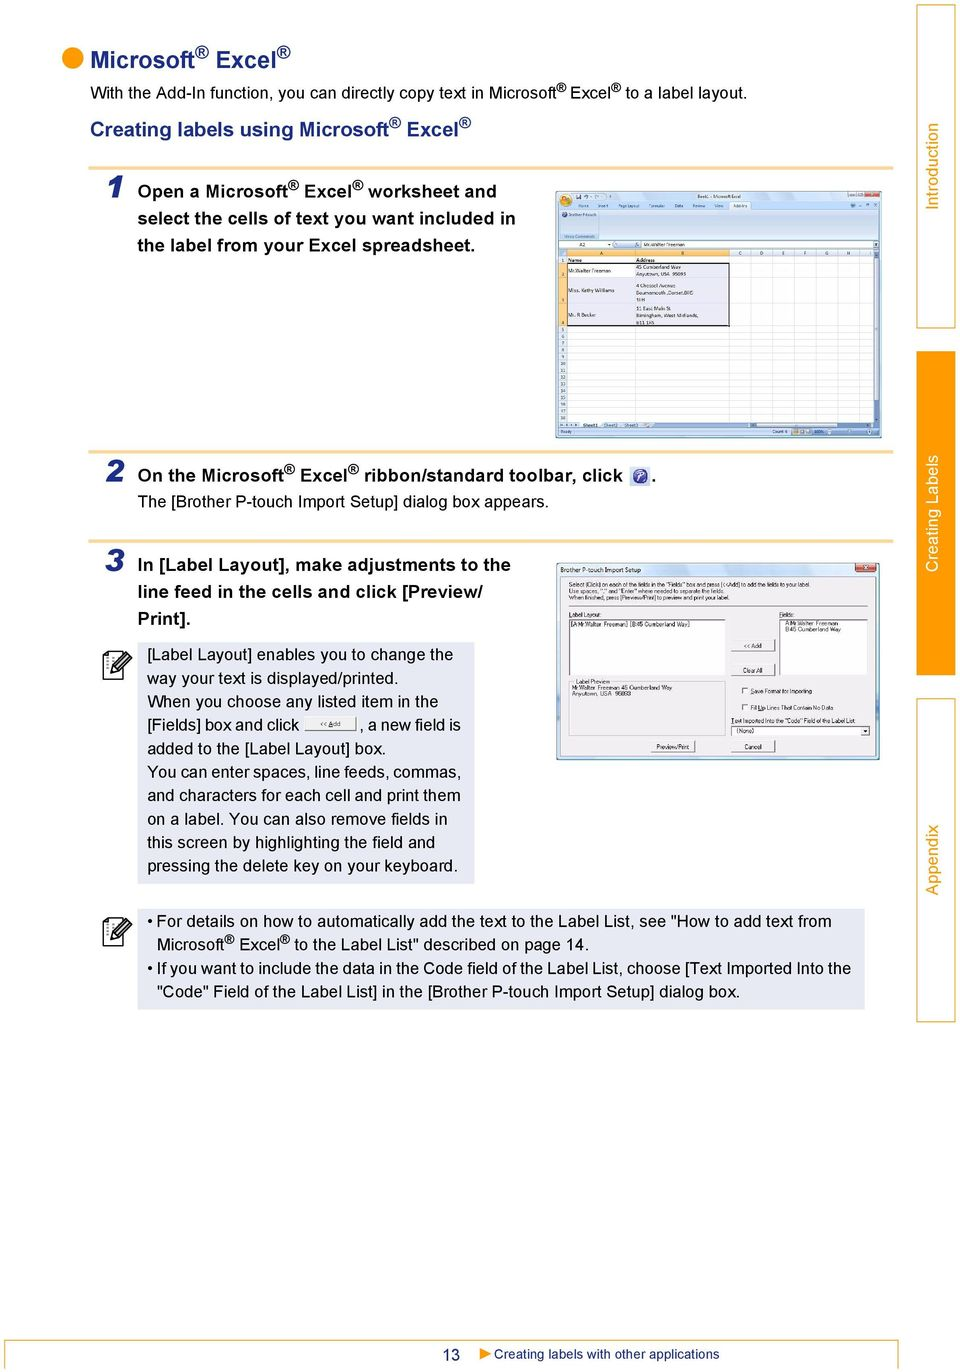 2 On the Microsoft Excel ribbon/standard toolbar, click. The [Brother P-touch Import Setup] dialog box appears.